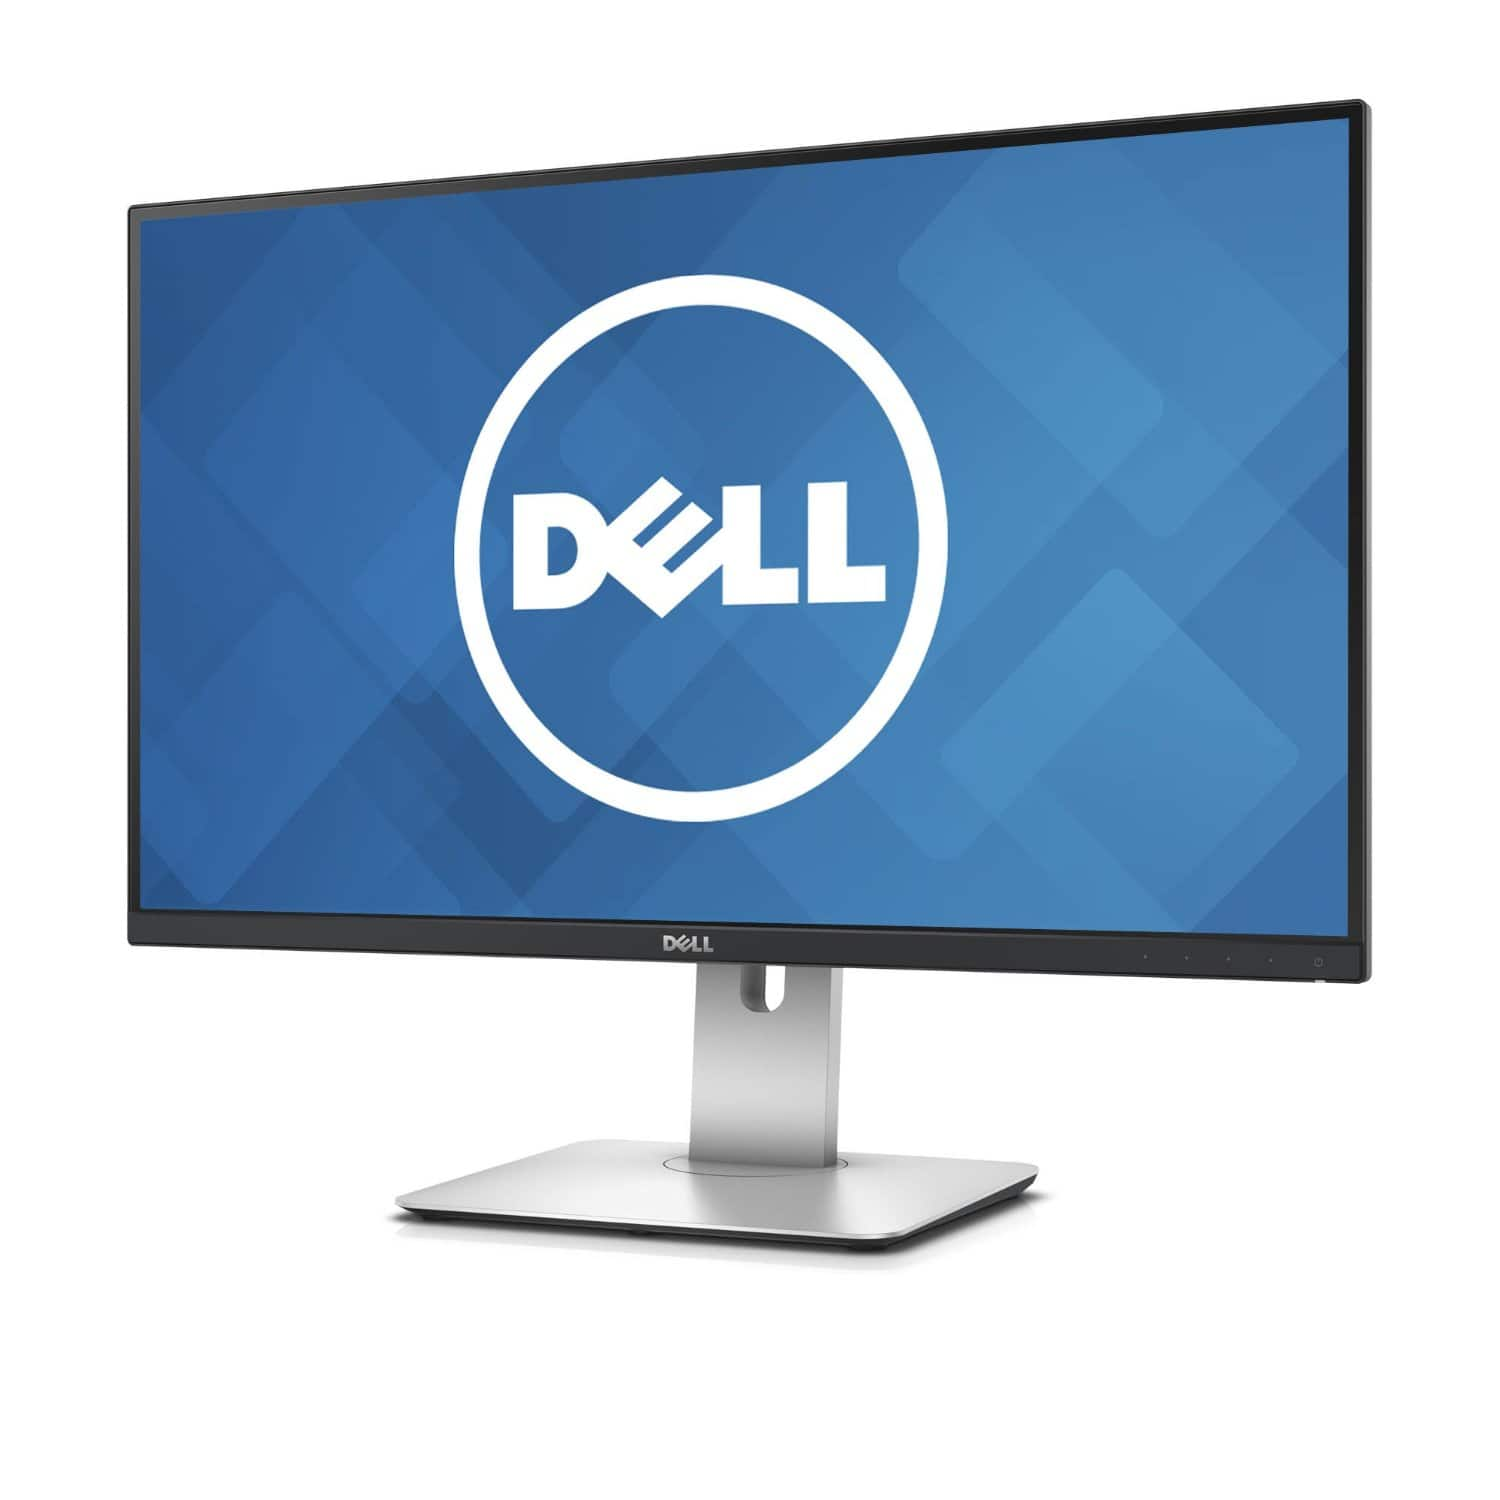 "27"" Dell U2715H 2560x1440 IPS Monitor + $200 Dell eGift Card $540 + Free Shipping"